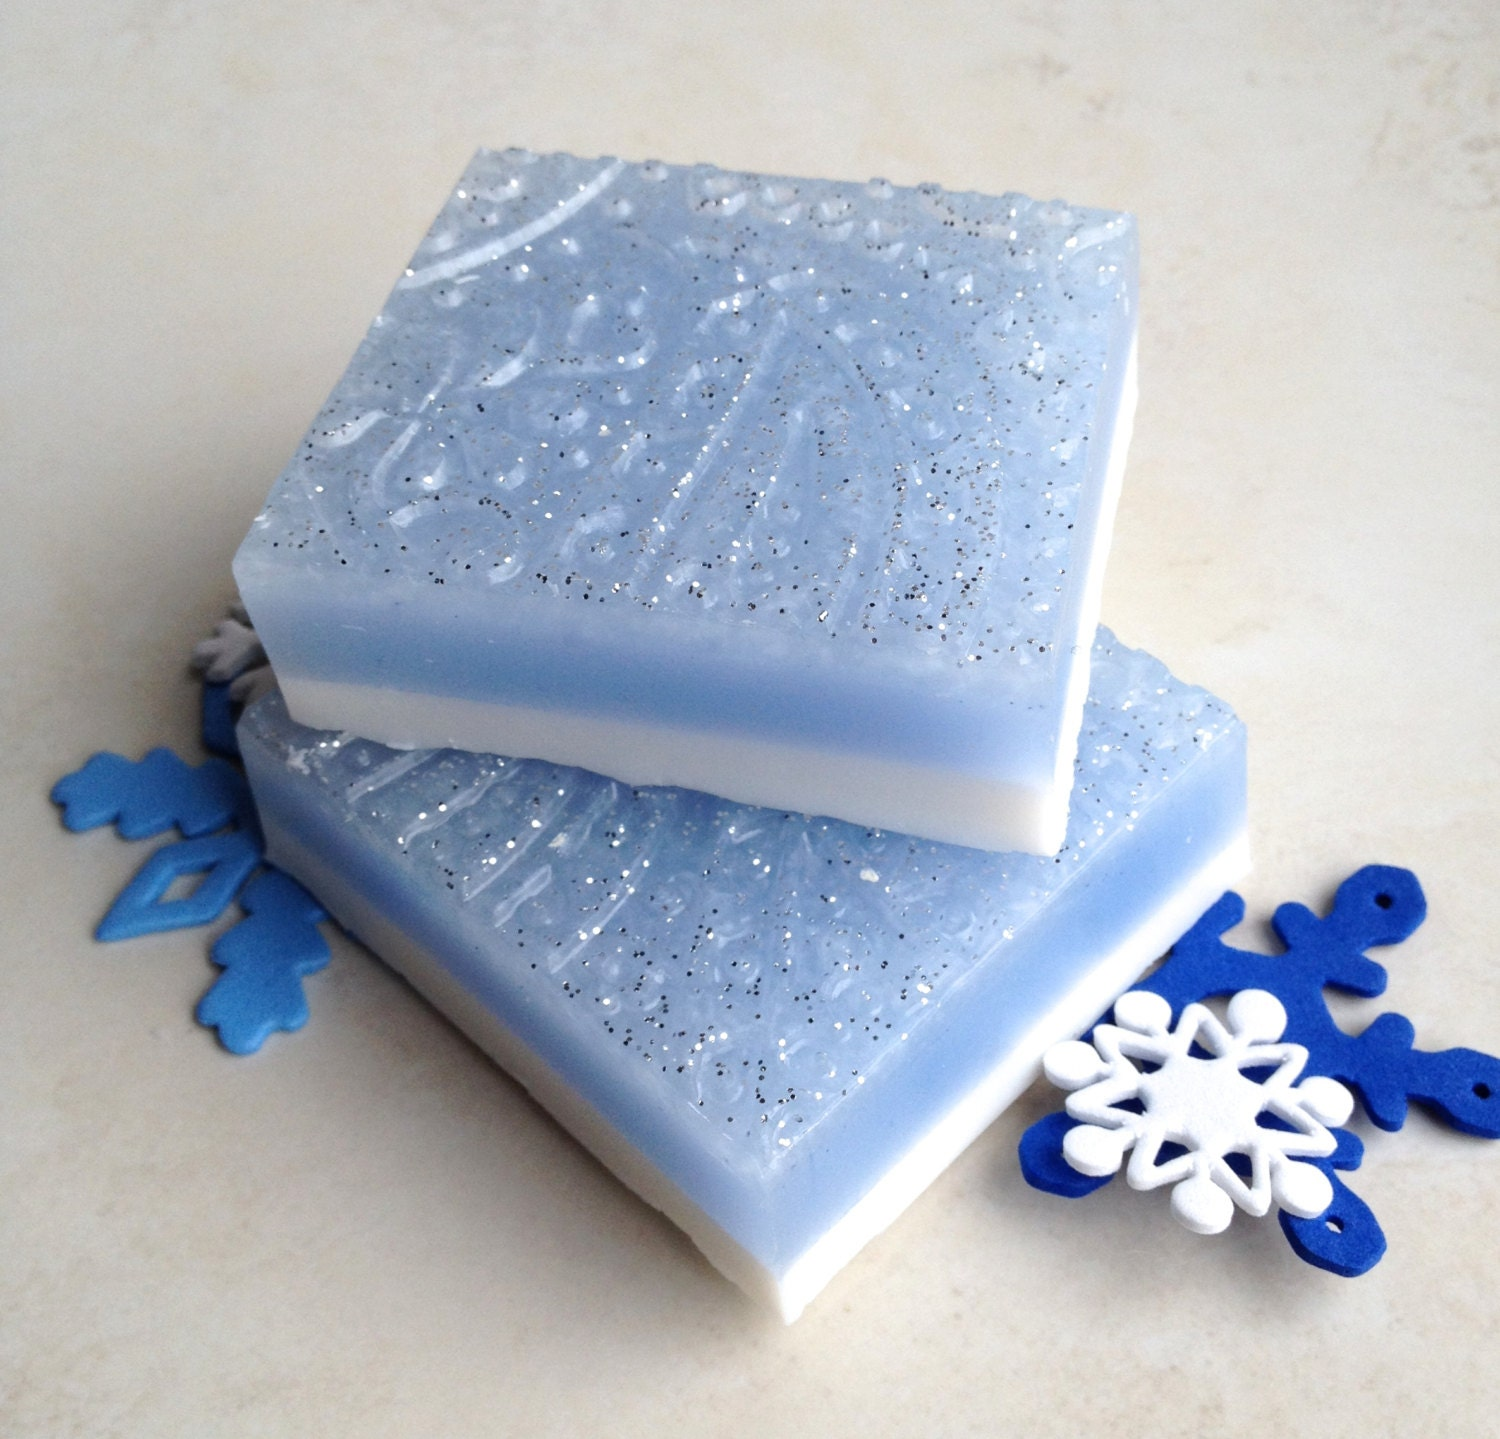 First Frost Winter Soap Bar, Glycerin Soap, Fresh Air, Spring Water Ice, Heliotrope Soap, Holiday Soap, Blue Glitter - LovelyBody